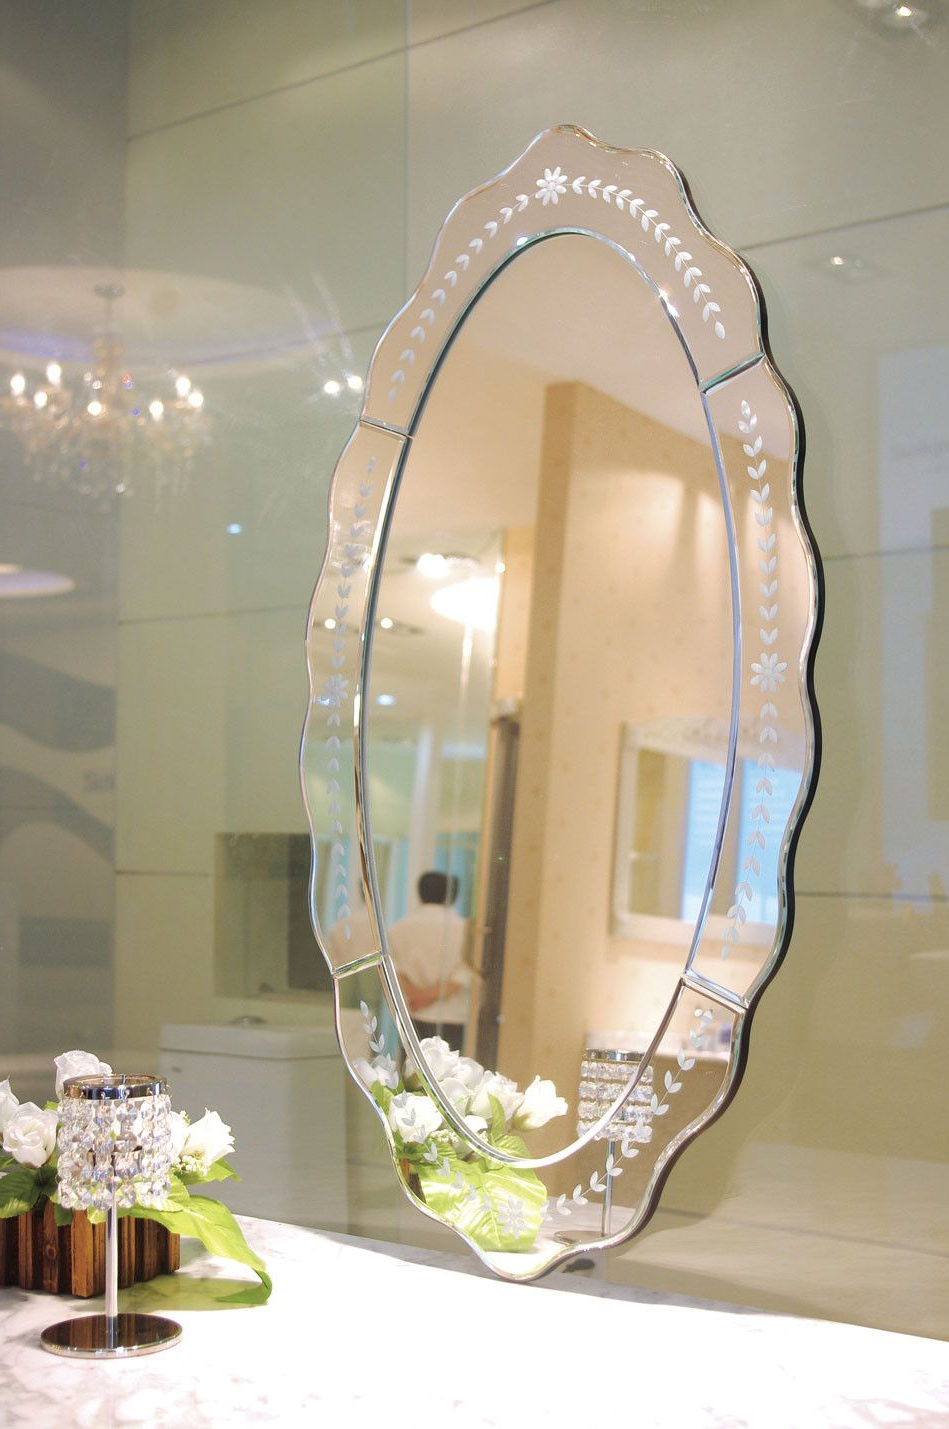 Most Recent Ablaze Celeste Decorative Oval Wall Mirror Tg – Adof (View 7 of 20)